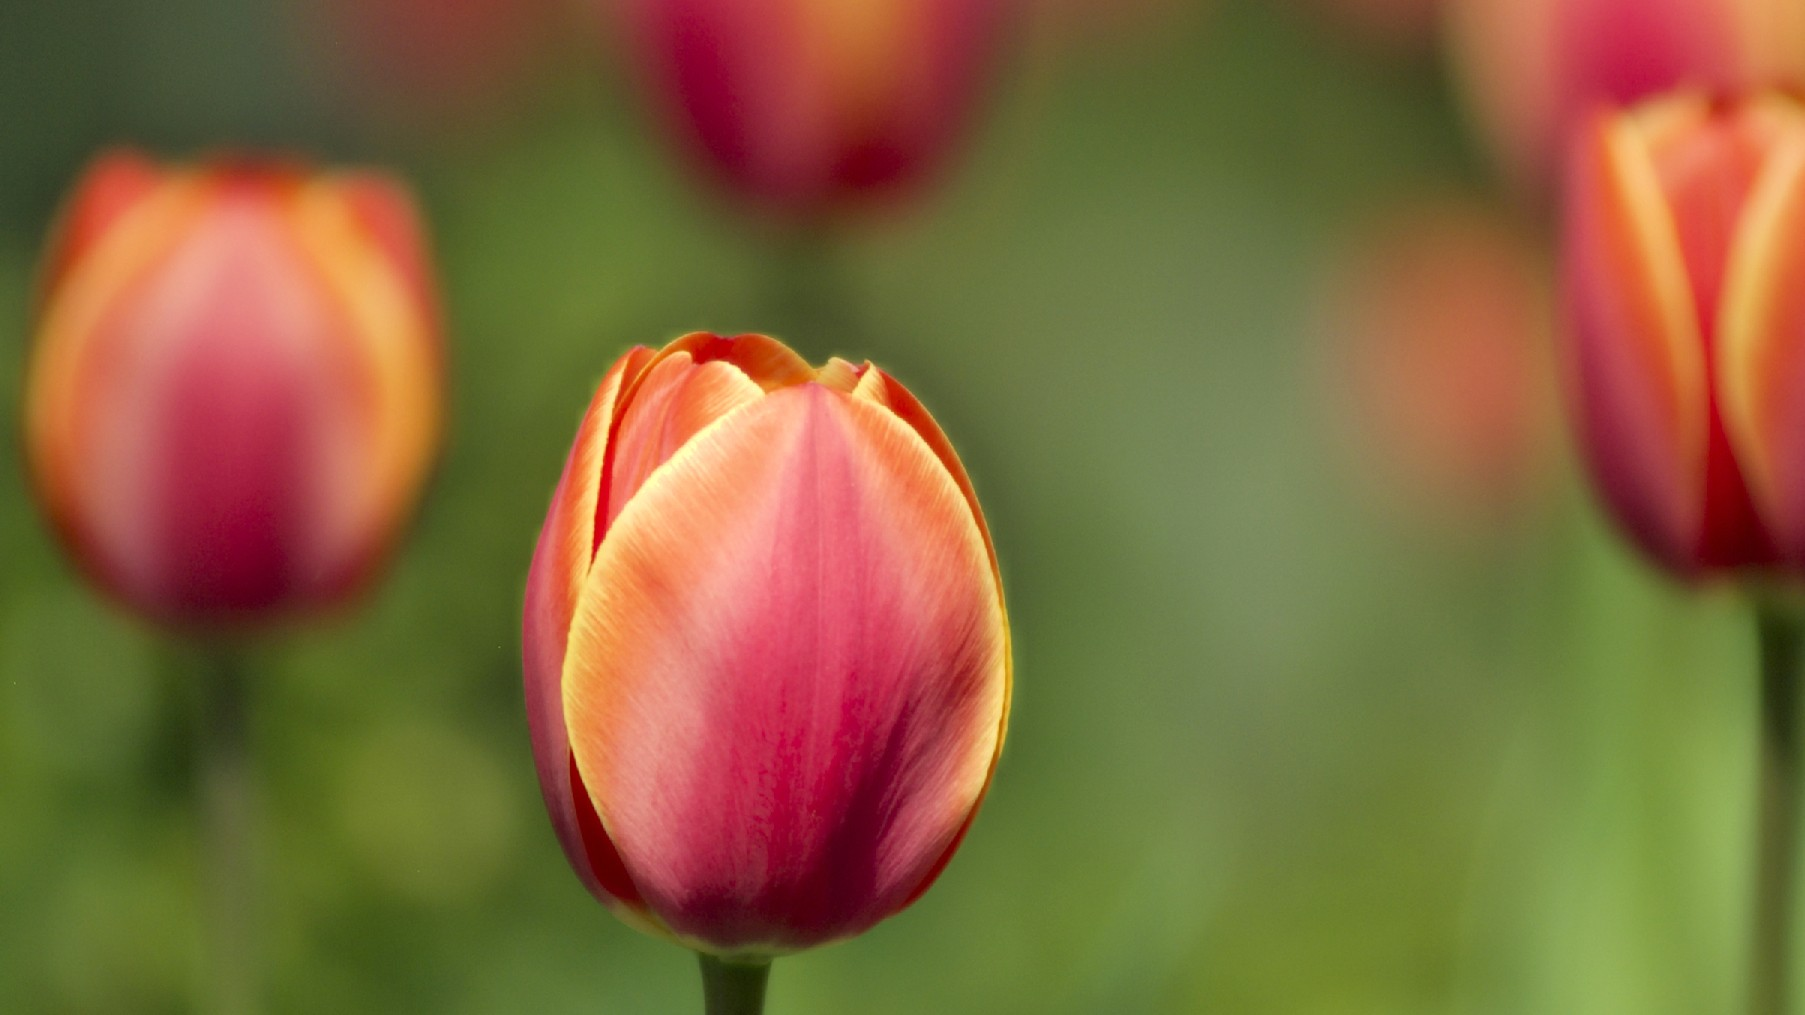 Tulips, Flower Wallpapers, Nature Images, Plants, Hd - Sprenger's Tulip , HD Wallpaper & Backgrounds